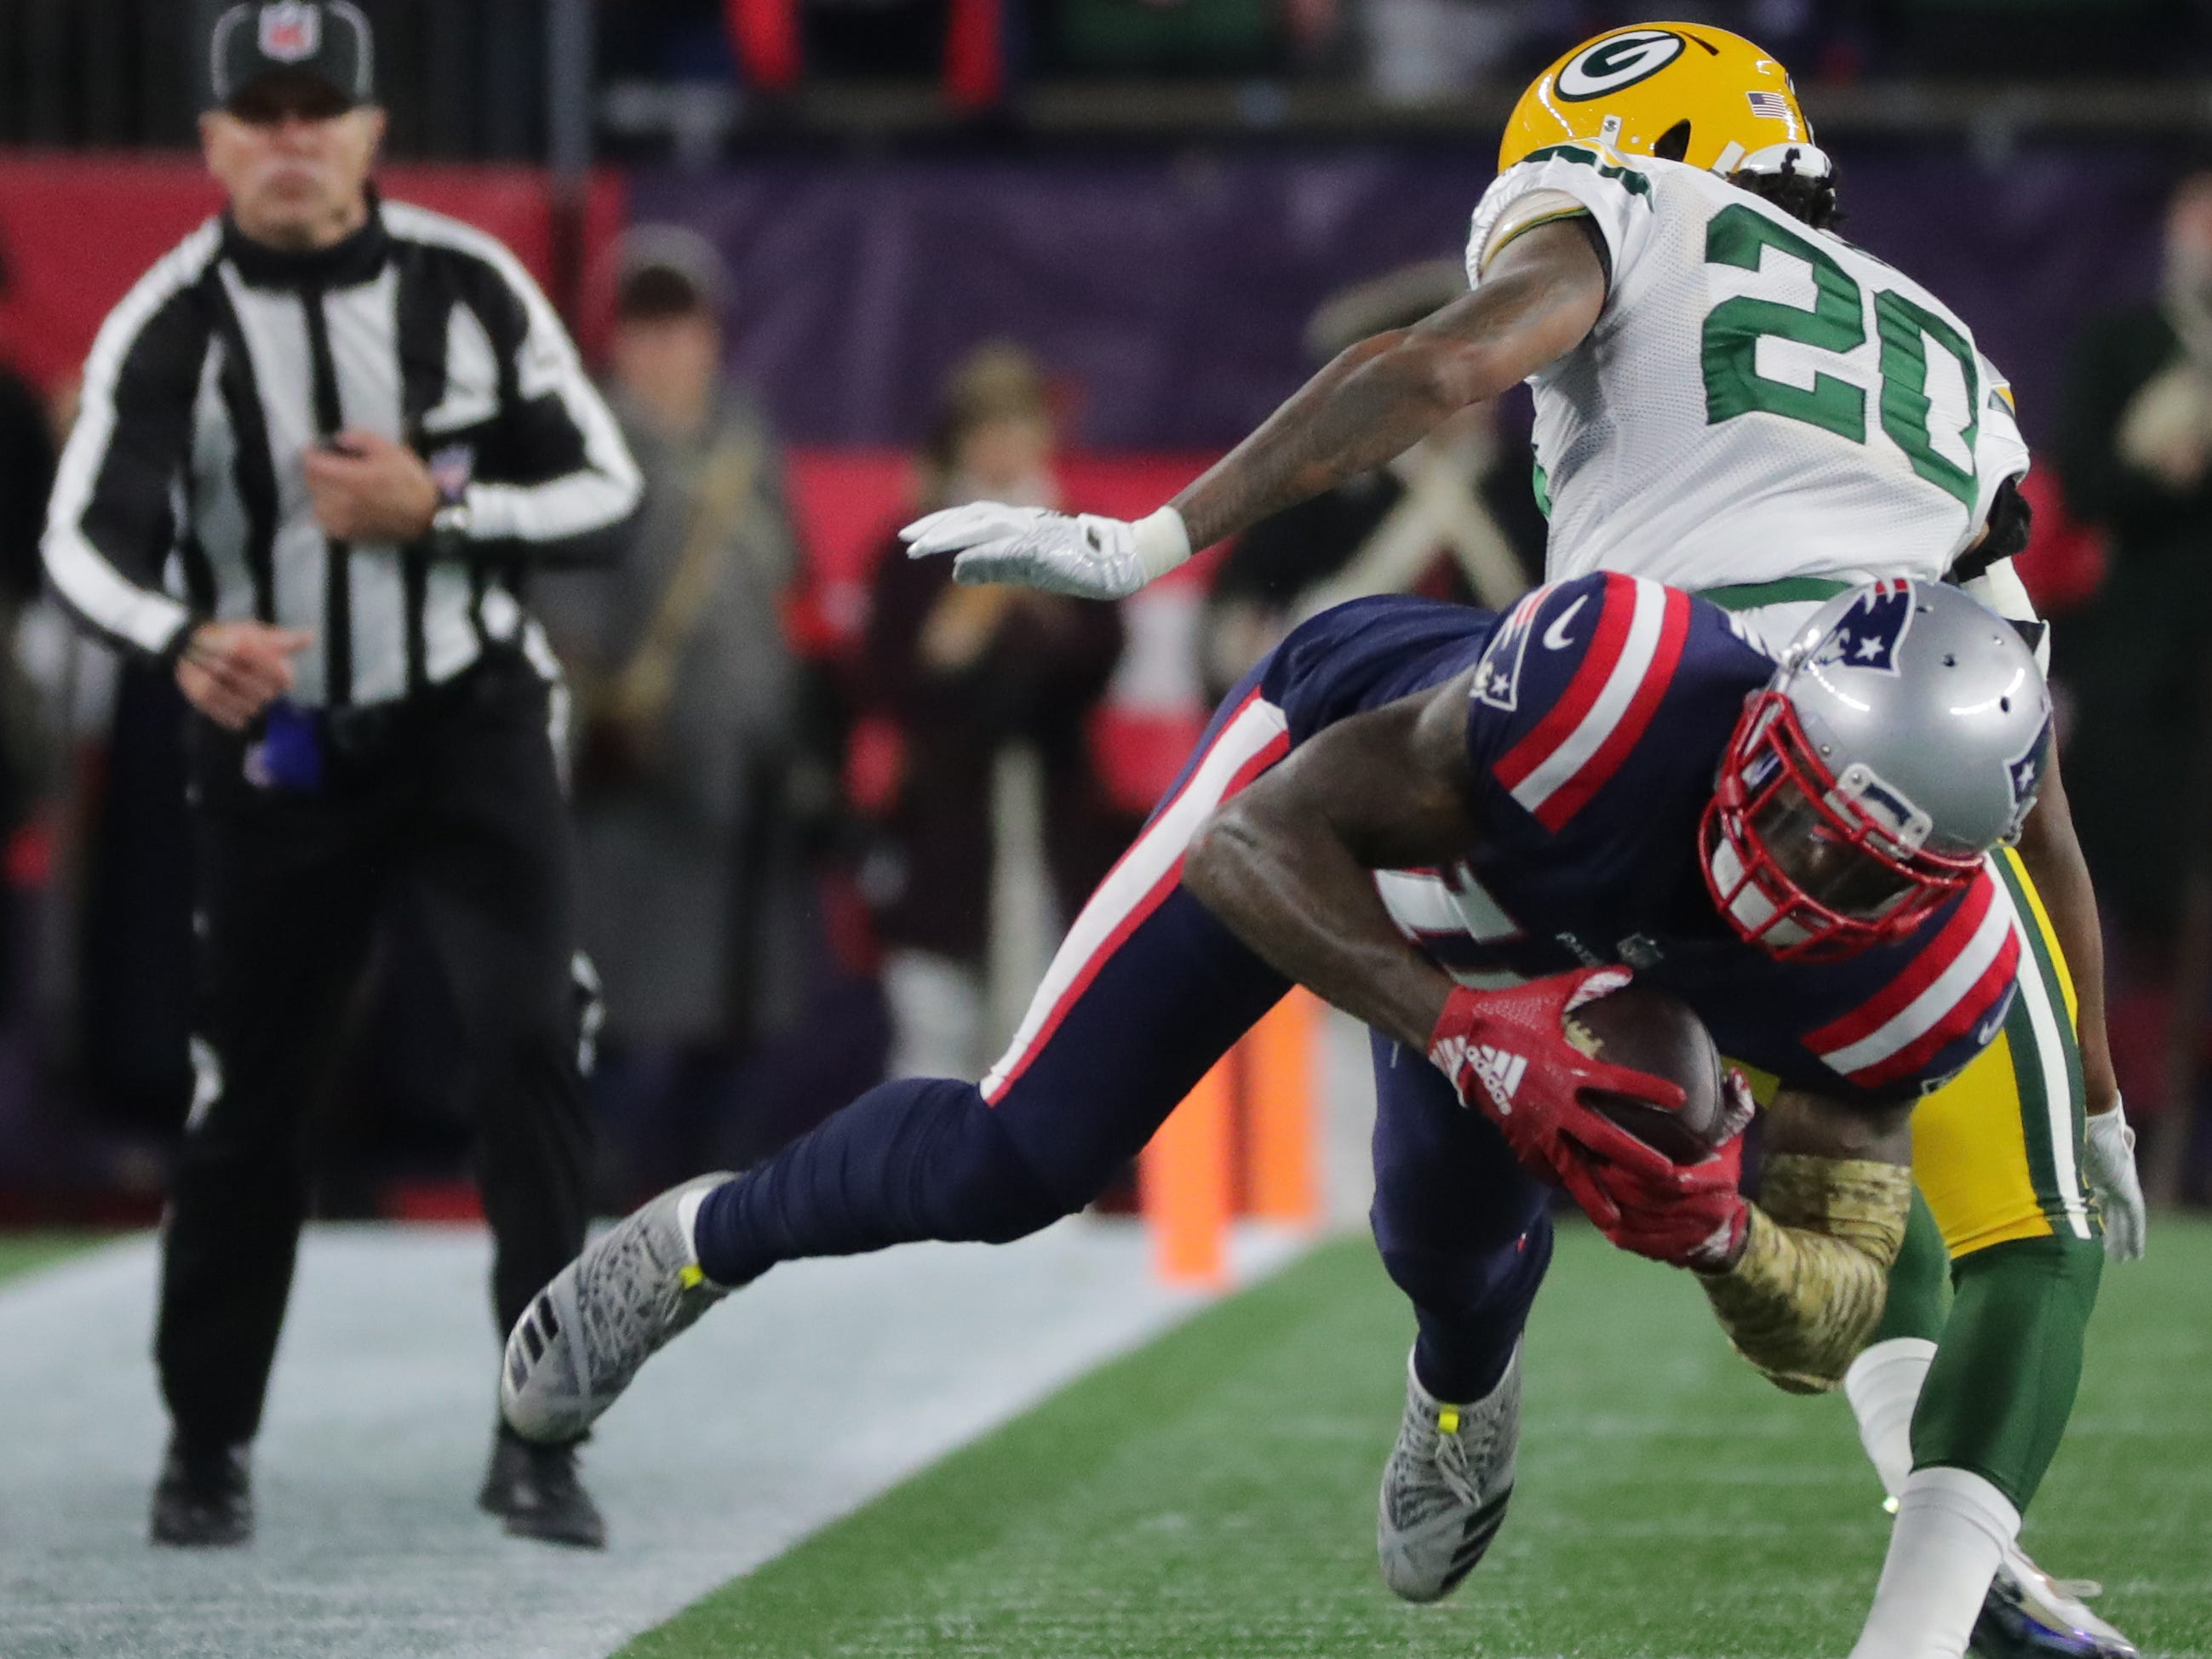 New England Patriots wide receiver Josh Gordon (10) is unable to stay inbounds for a completion while being covered by Green Bay Packers cornerback Kevin King (20) during the second quarter of their game Sunday, November 4, 2018 at Gillette Stadium in Foxborough, Mass.